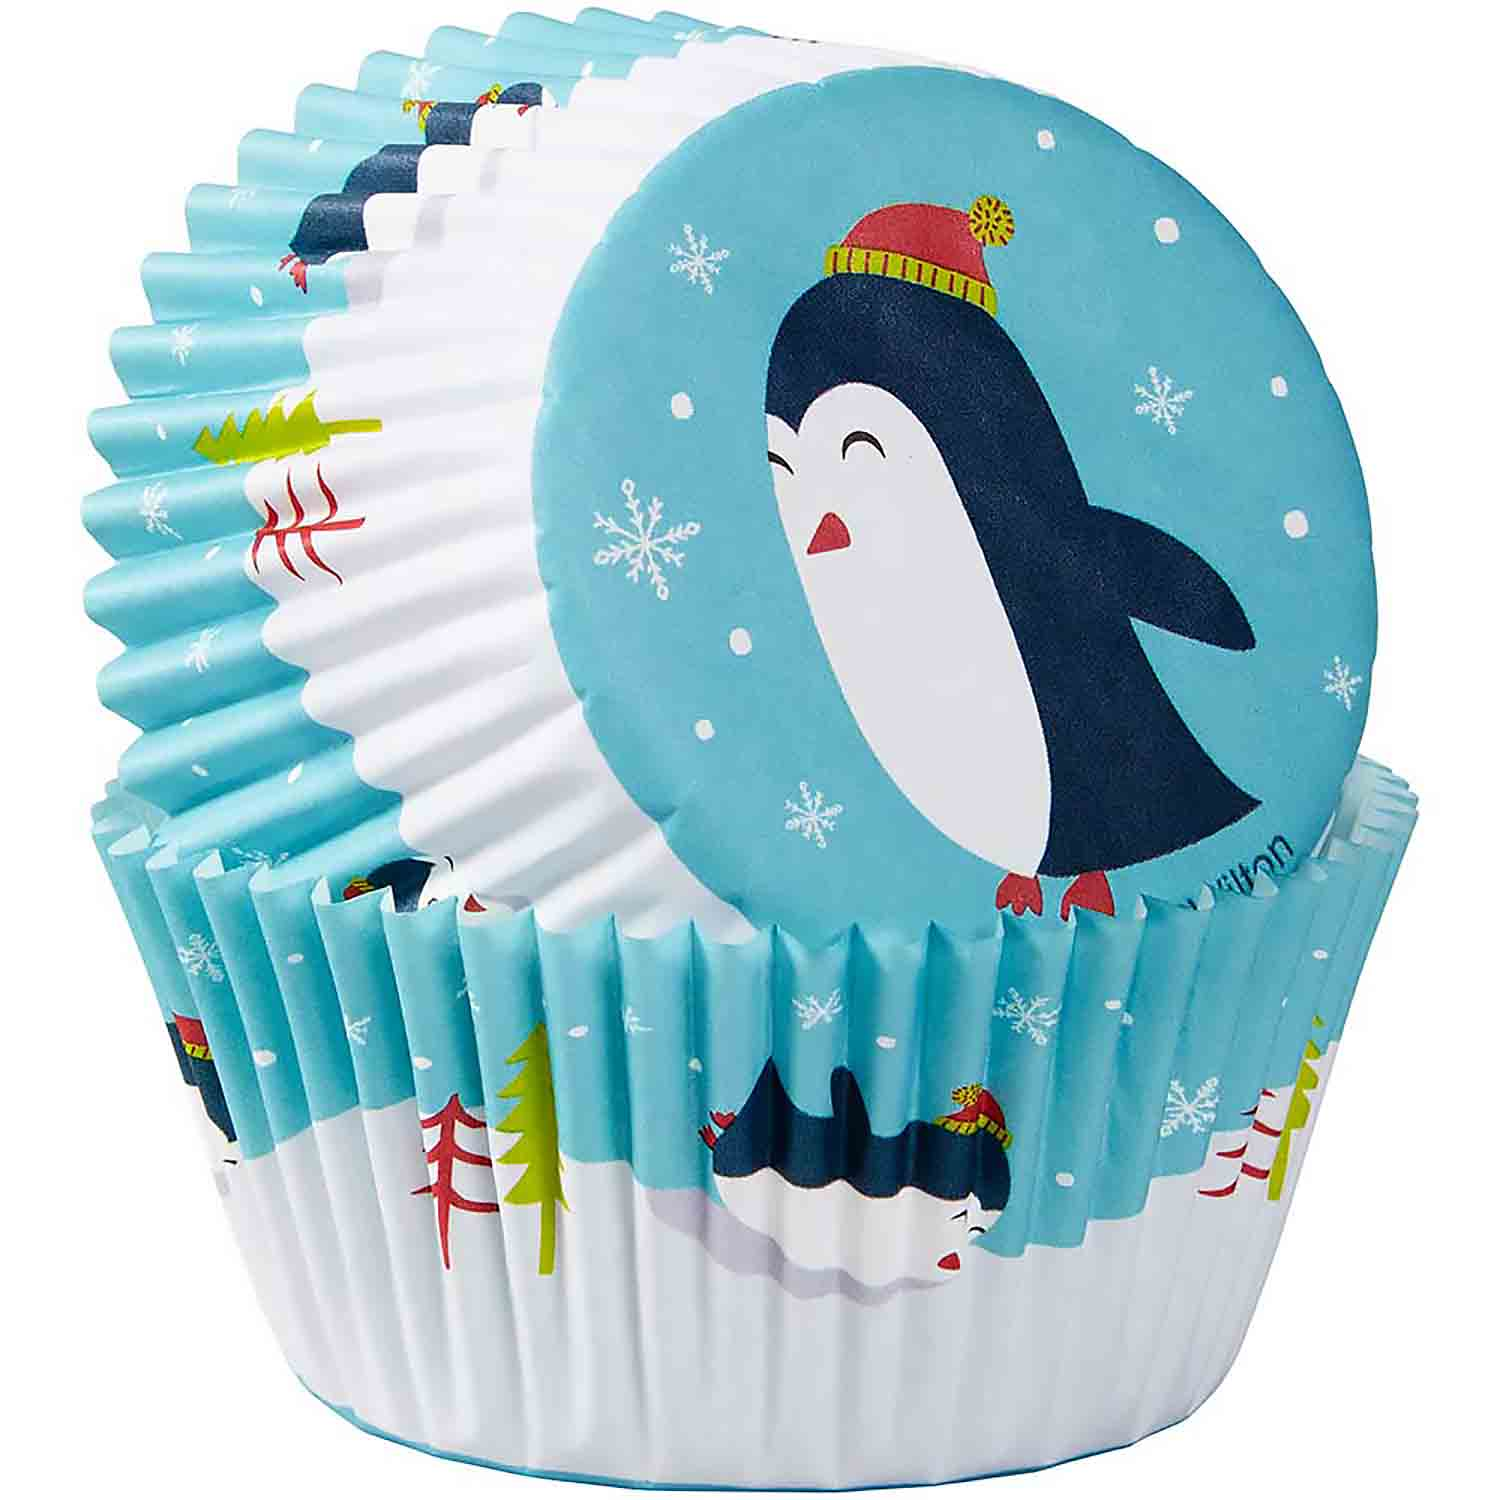 Penguin Standard Baking Cups